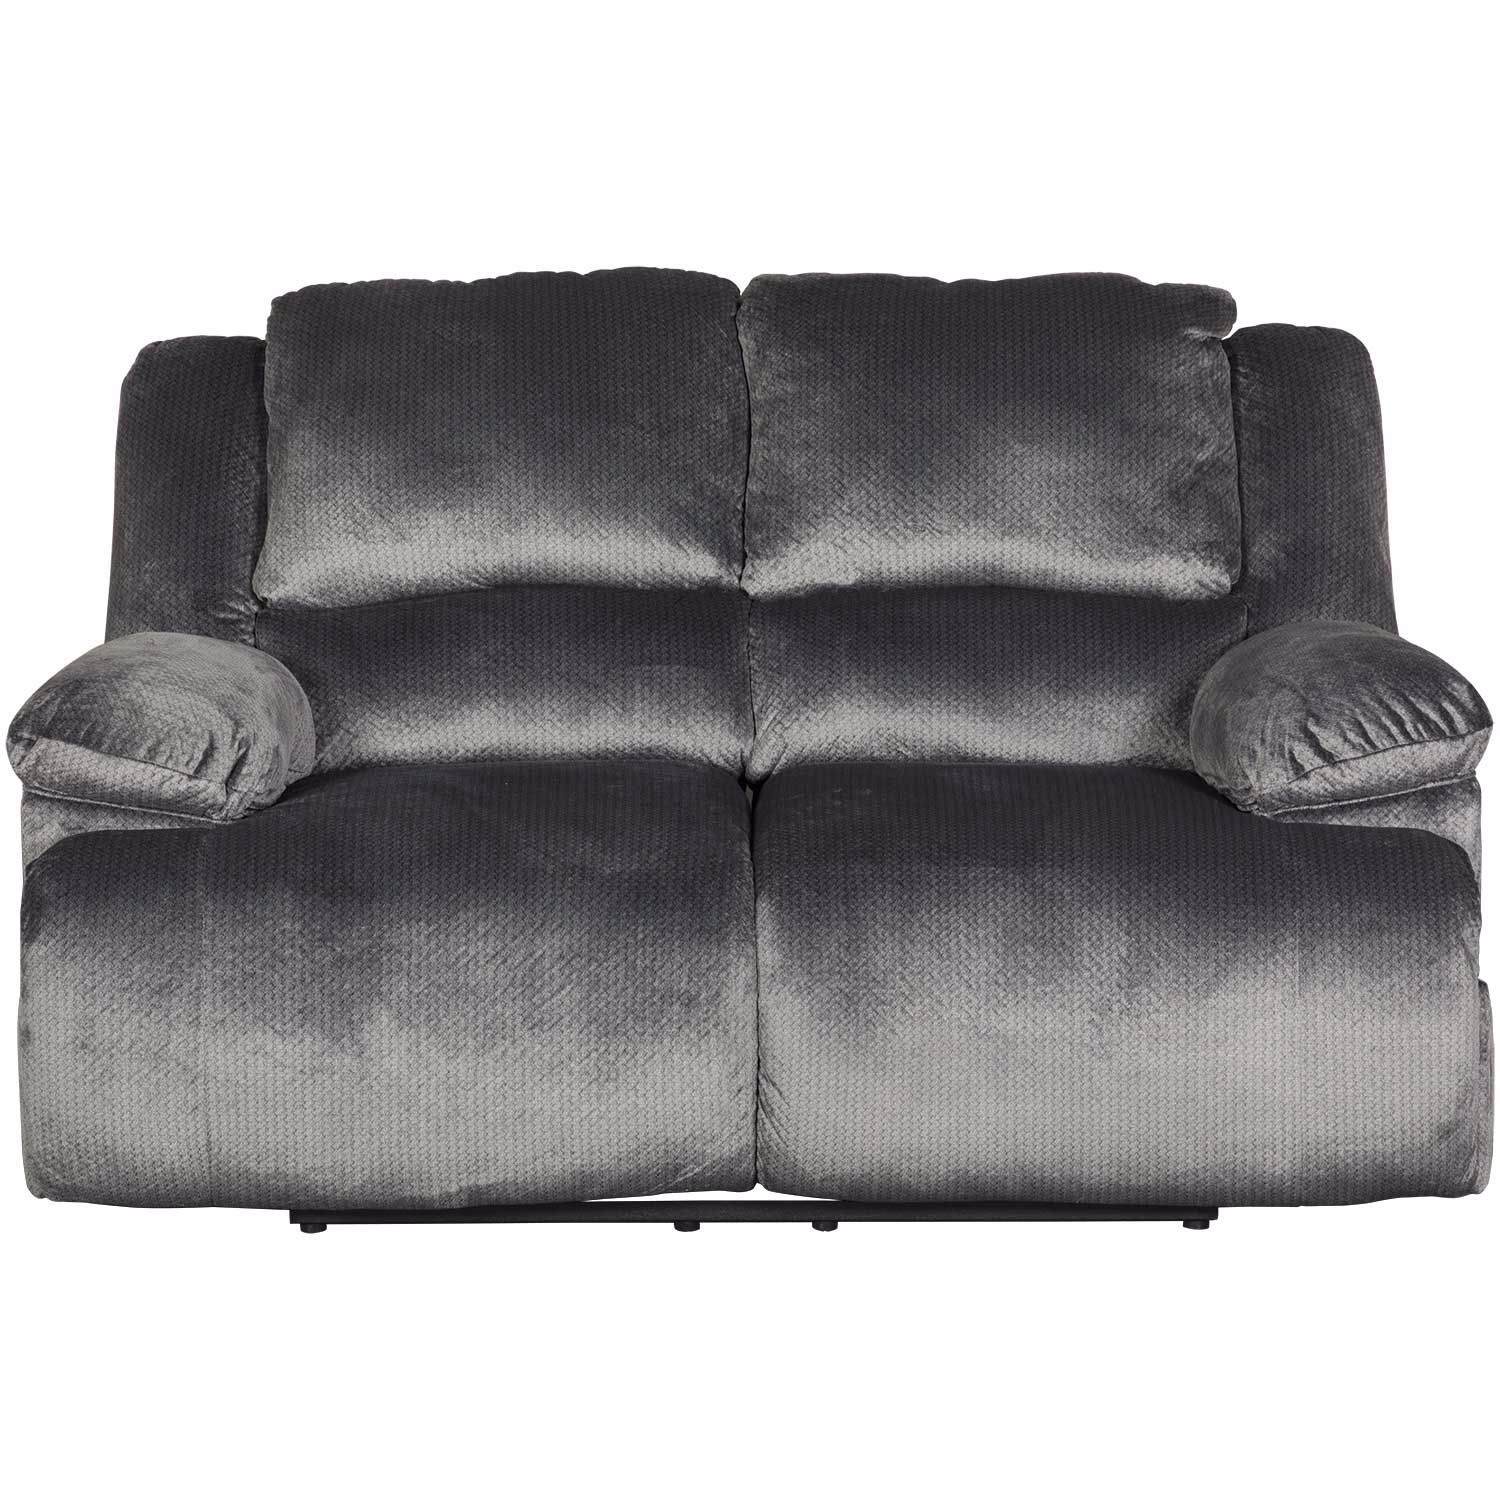 Astounding Charcoal Power Reclining Loveseat Gmtry Best Dining Table And Chair Ideas Images Gmtryco